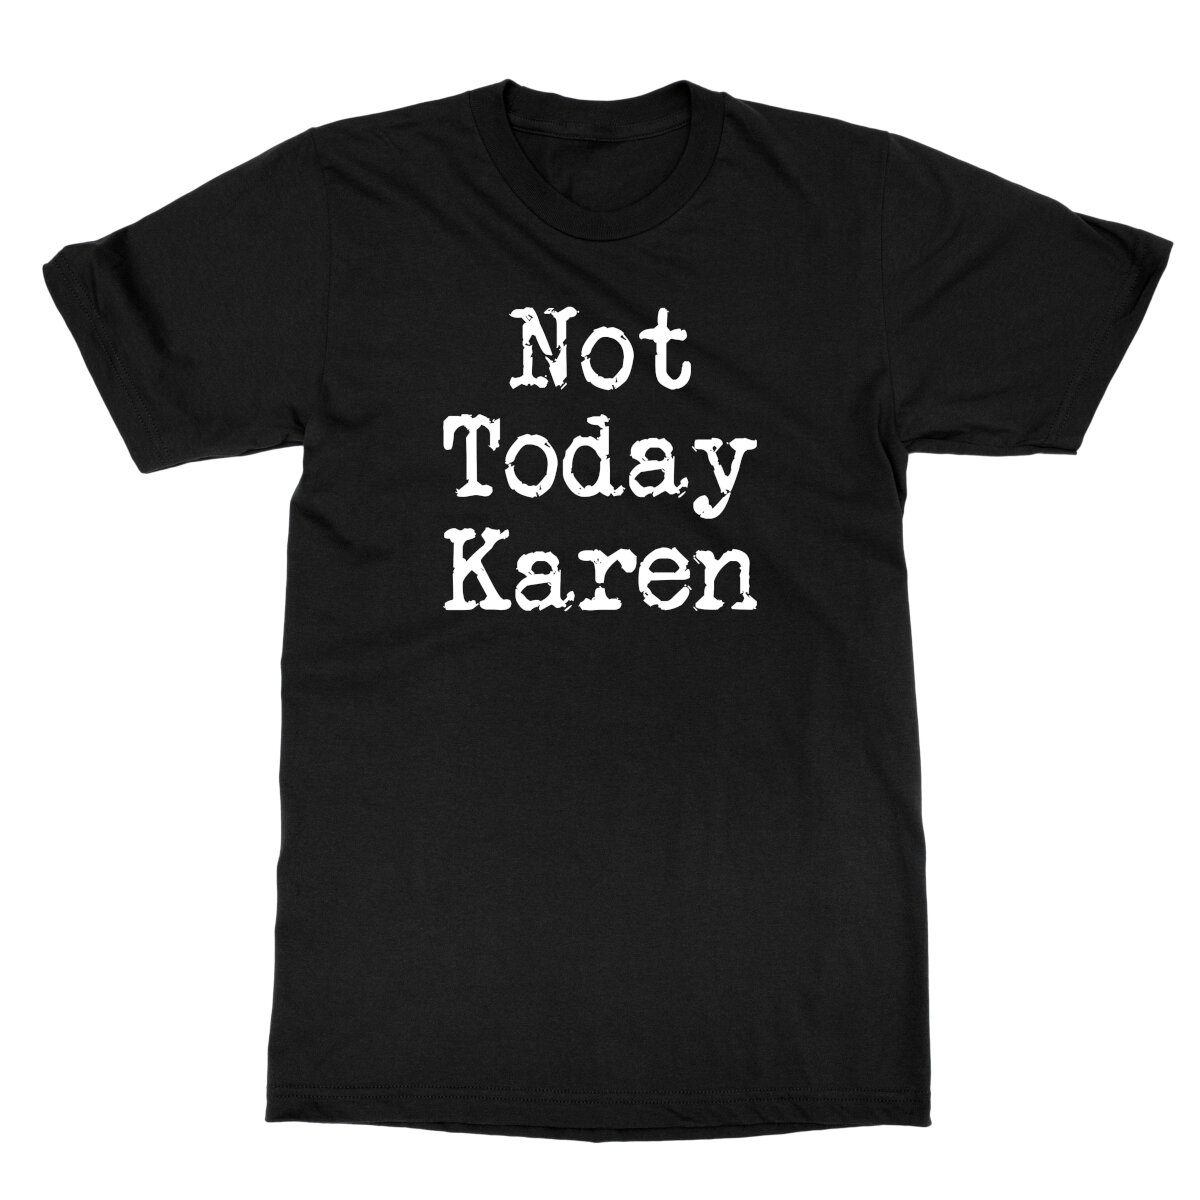 not-today-karen-tee-First-Alternate-image